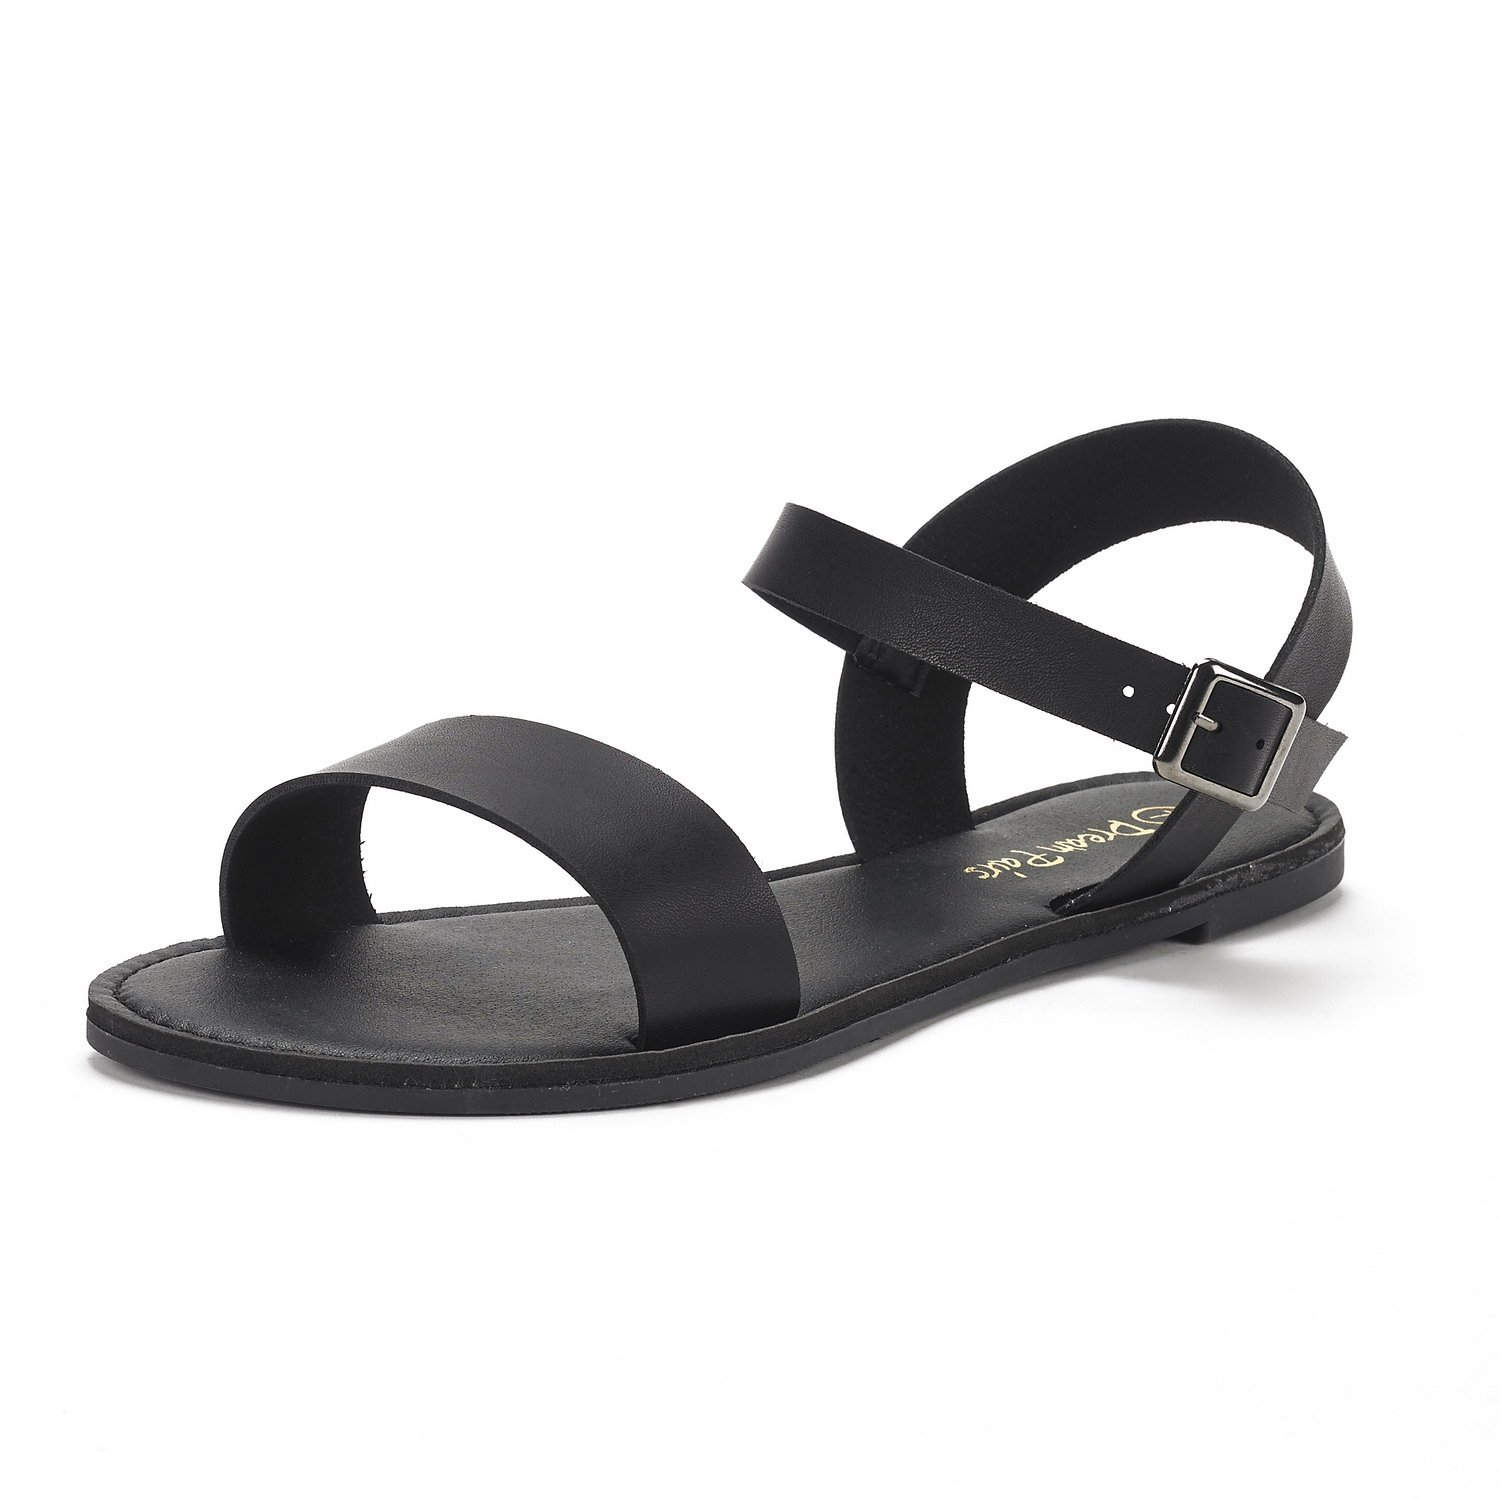 b76bca9afa Women HOBOO-NEW DREAM PAIRS Women's Cute Open Toes One Band Ankle Strap  Flexible Summer Flat Sandals New| DREAM PAIRS